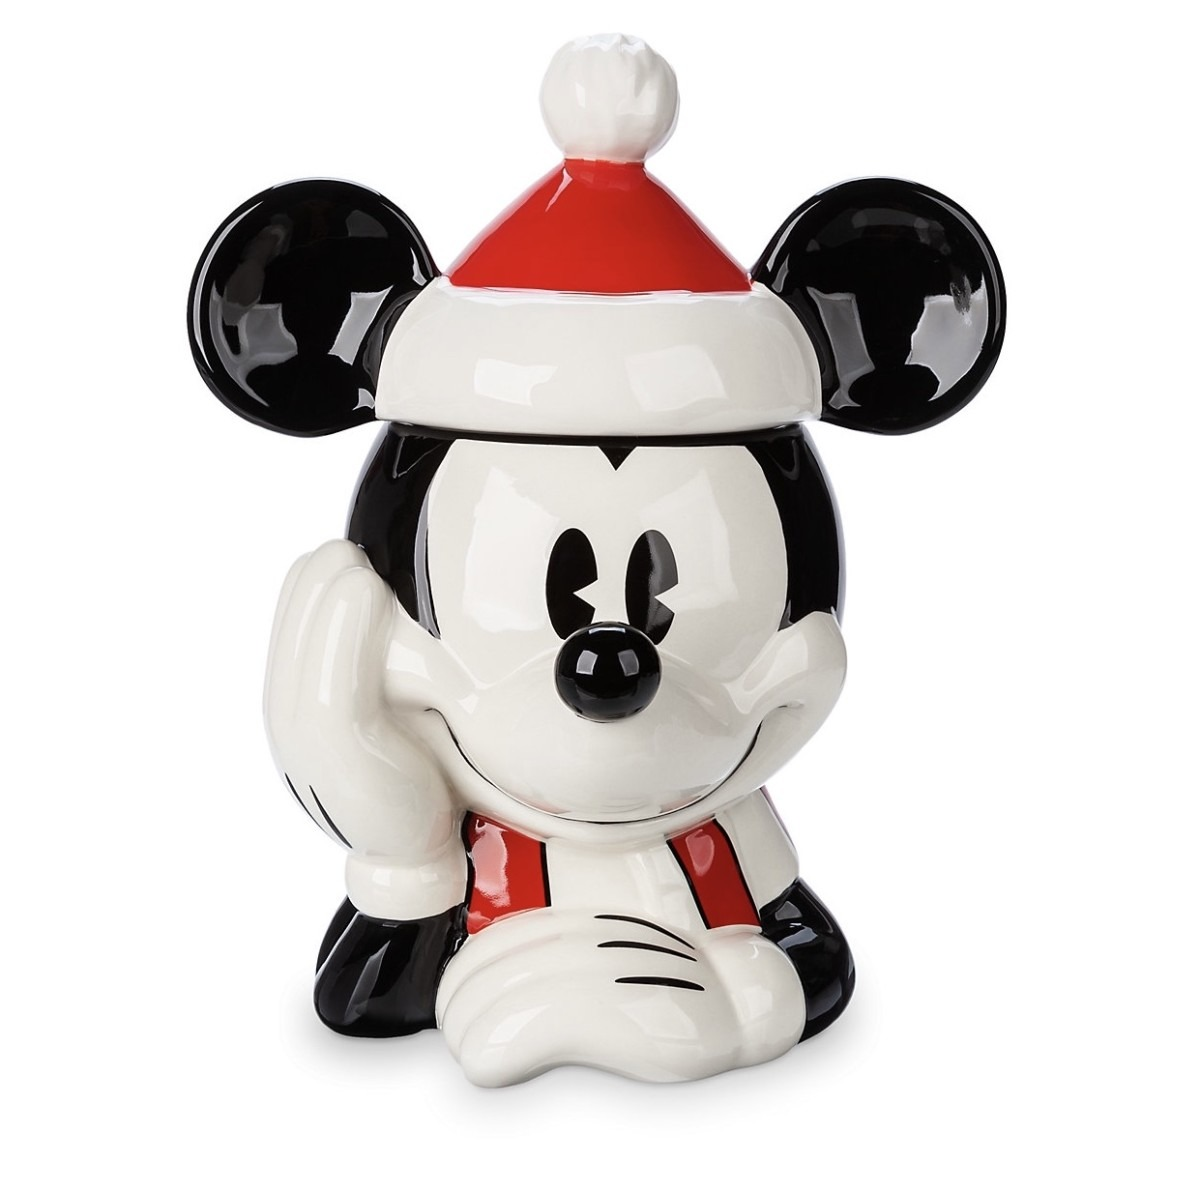 Holiday Merchandise Now Available at ShopDisney! #DisneyHolidays 5